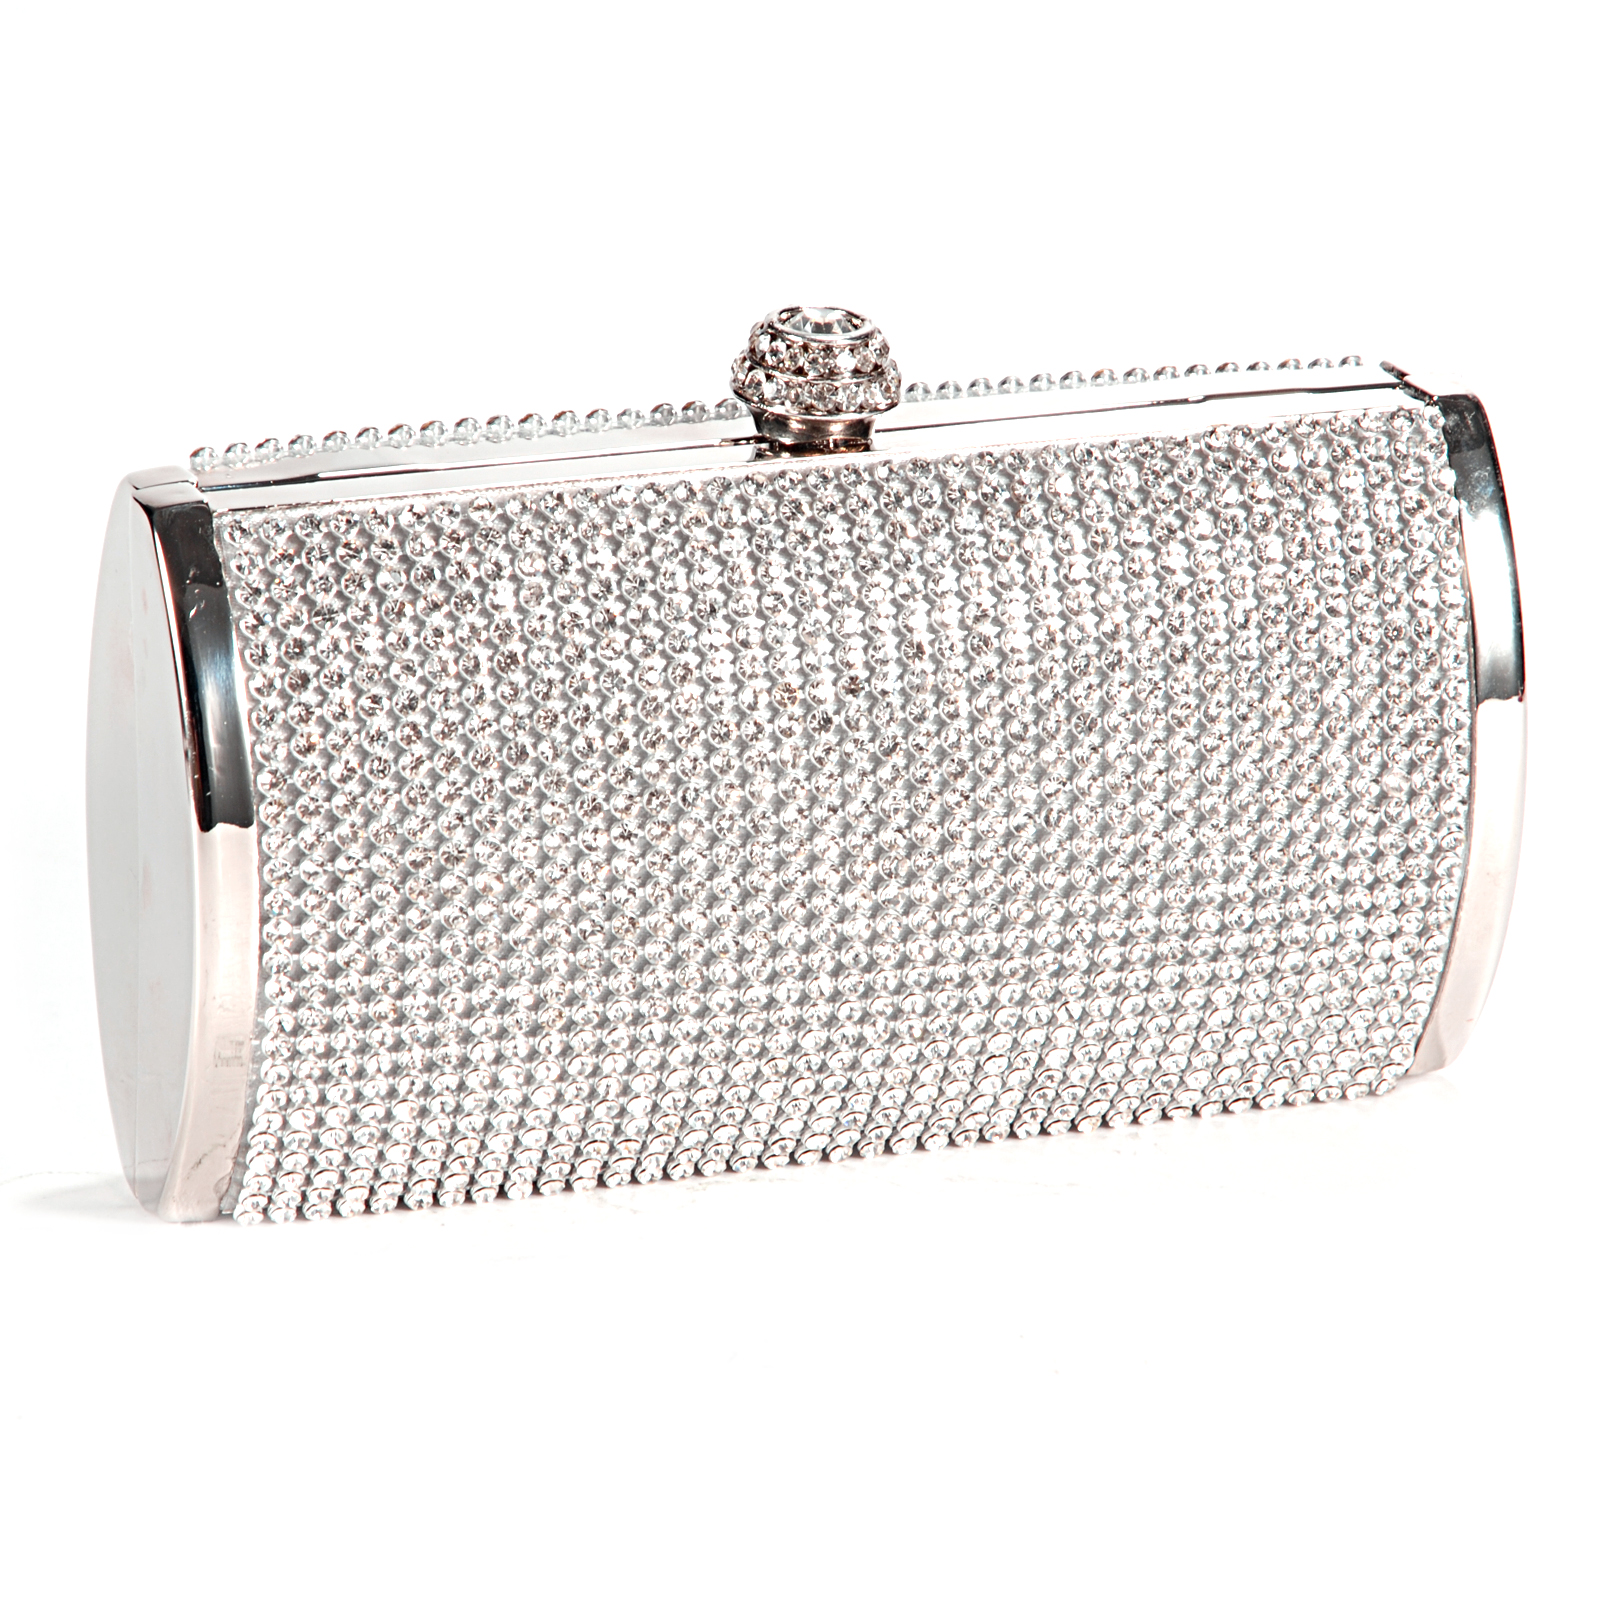 f677ebb78437 Details about Silver Crystal Diamante Evening Clutch Wedding Purse Party  Prom Bag BOX